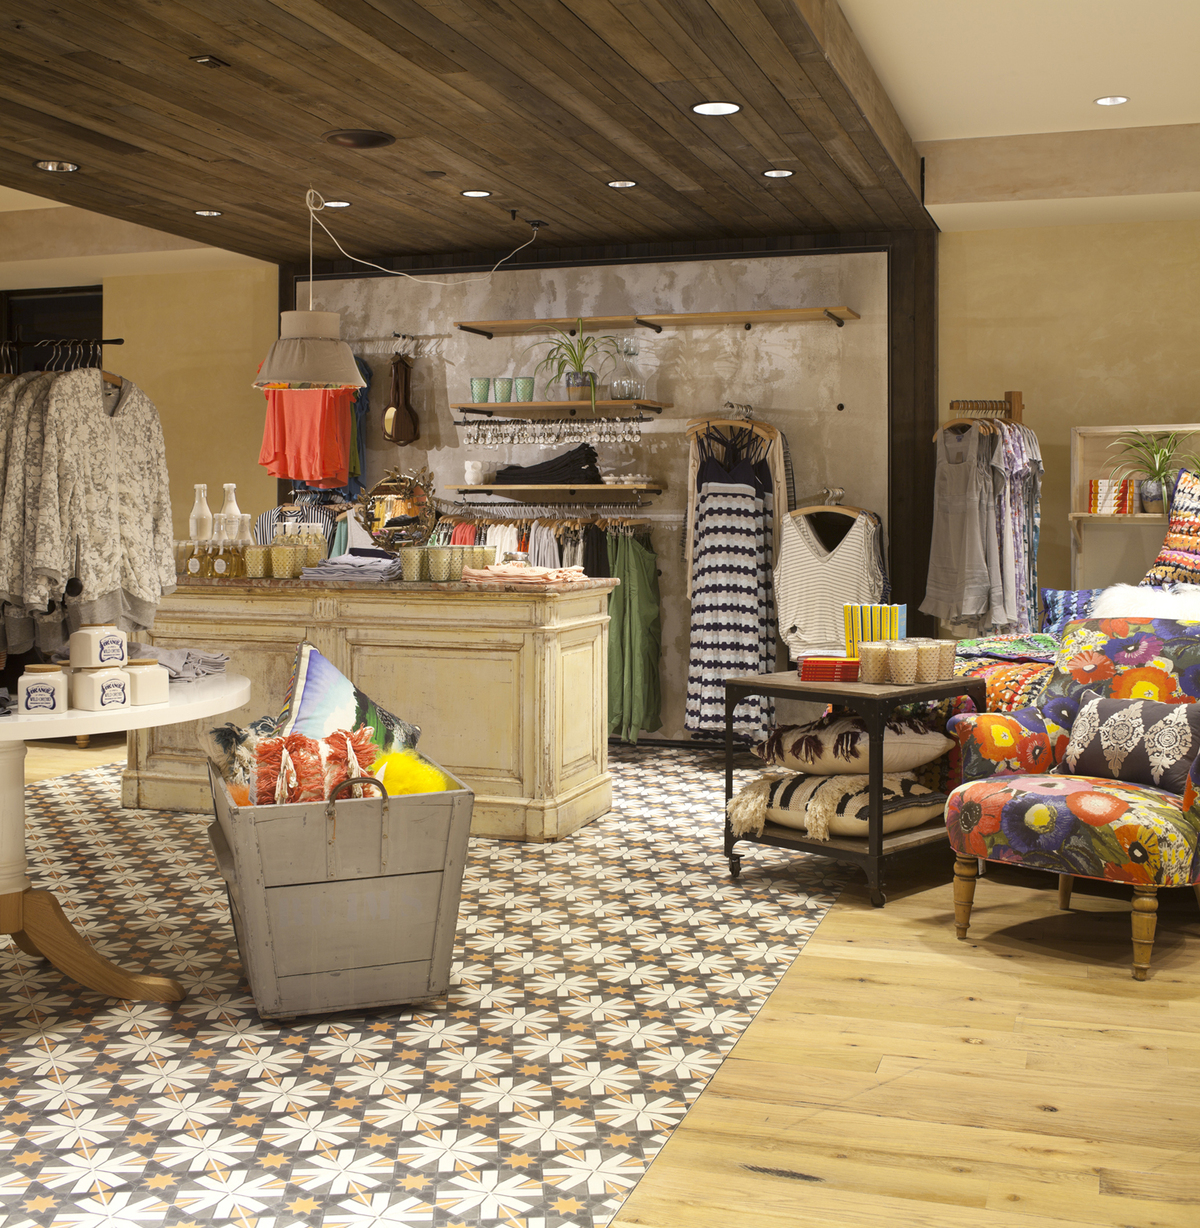 Home Design Stores Vancouver Bc Anthropologie Robert Jamieson Archinect